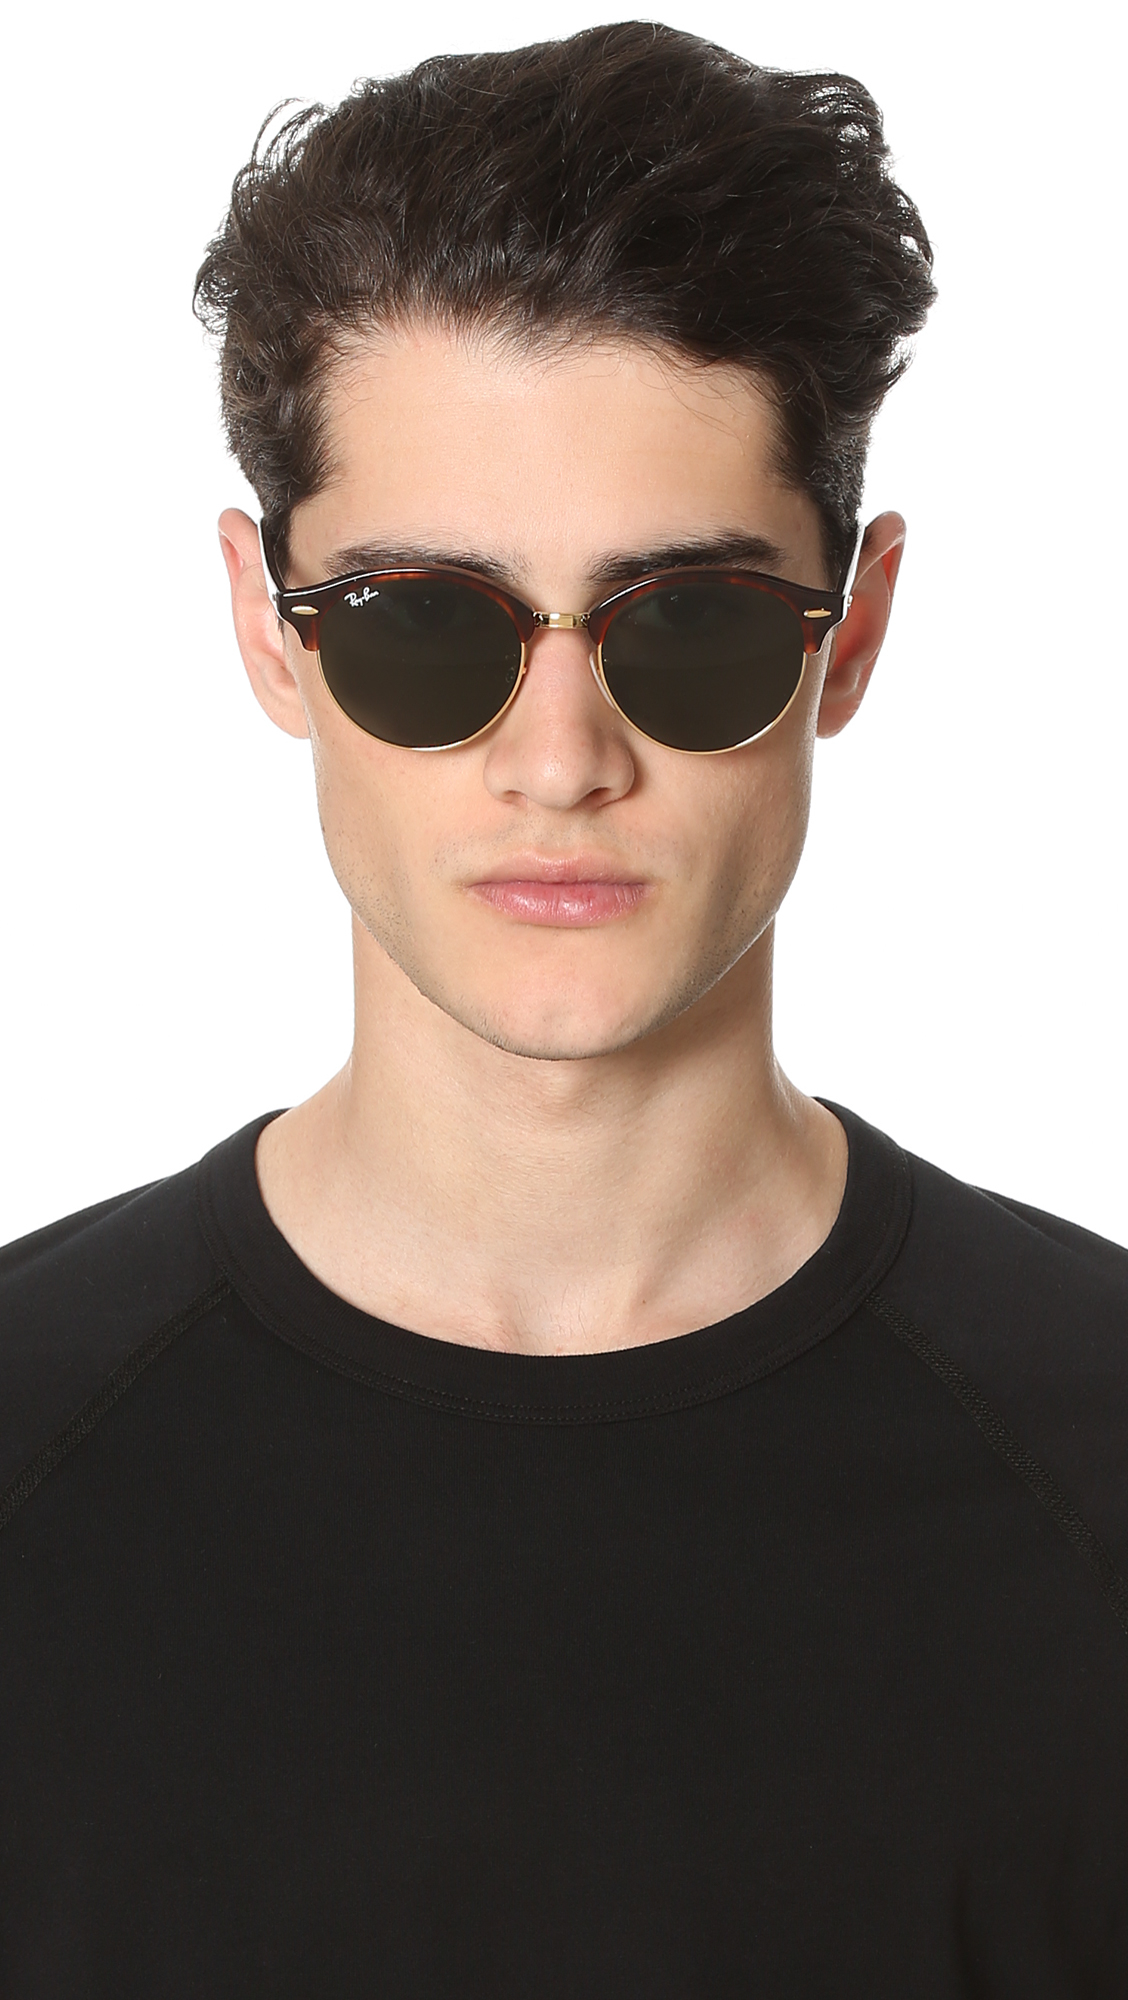 Ray Ban Club Round Sunglasses In Brown For Men Lyst